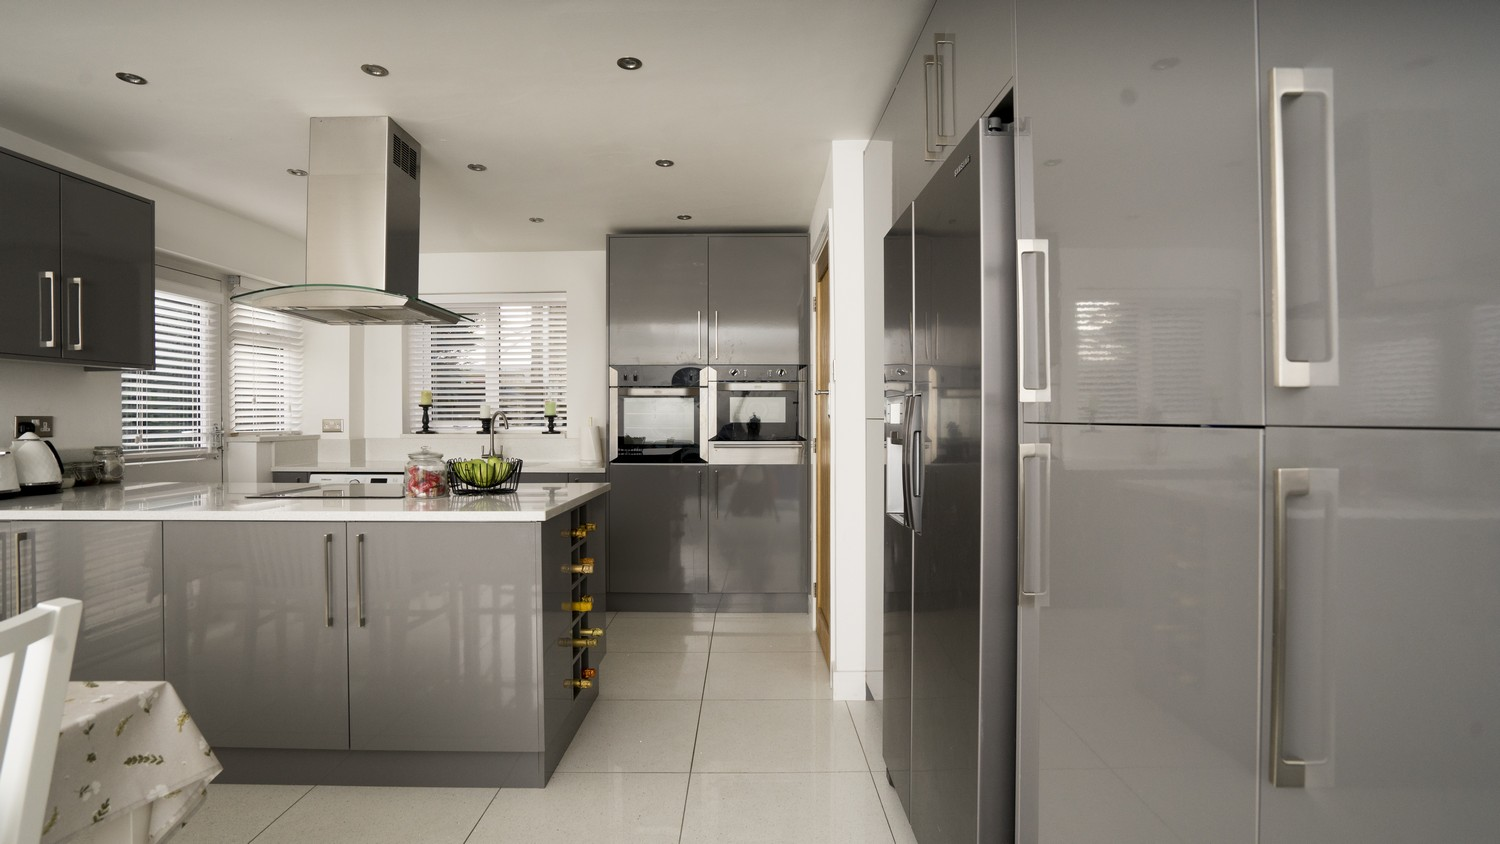 Grey gloss wine racks have also been installed in this family kitchen as shown at the end of the island.